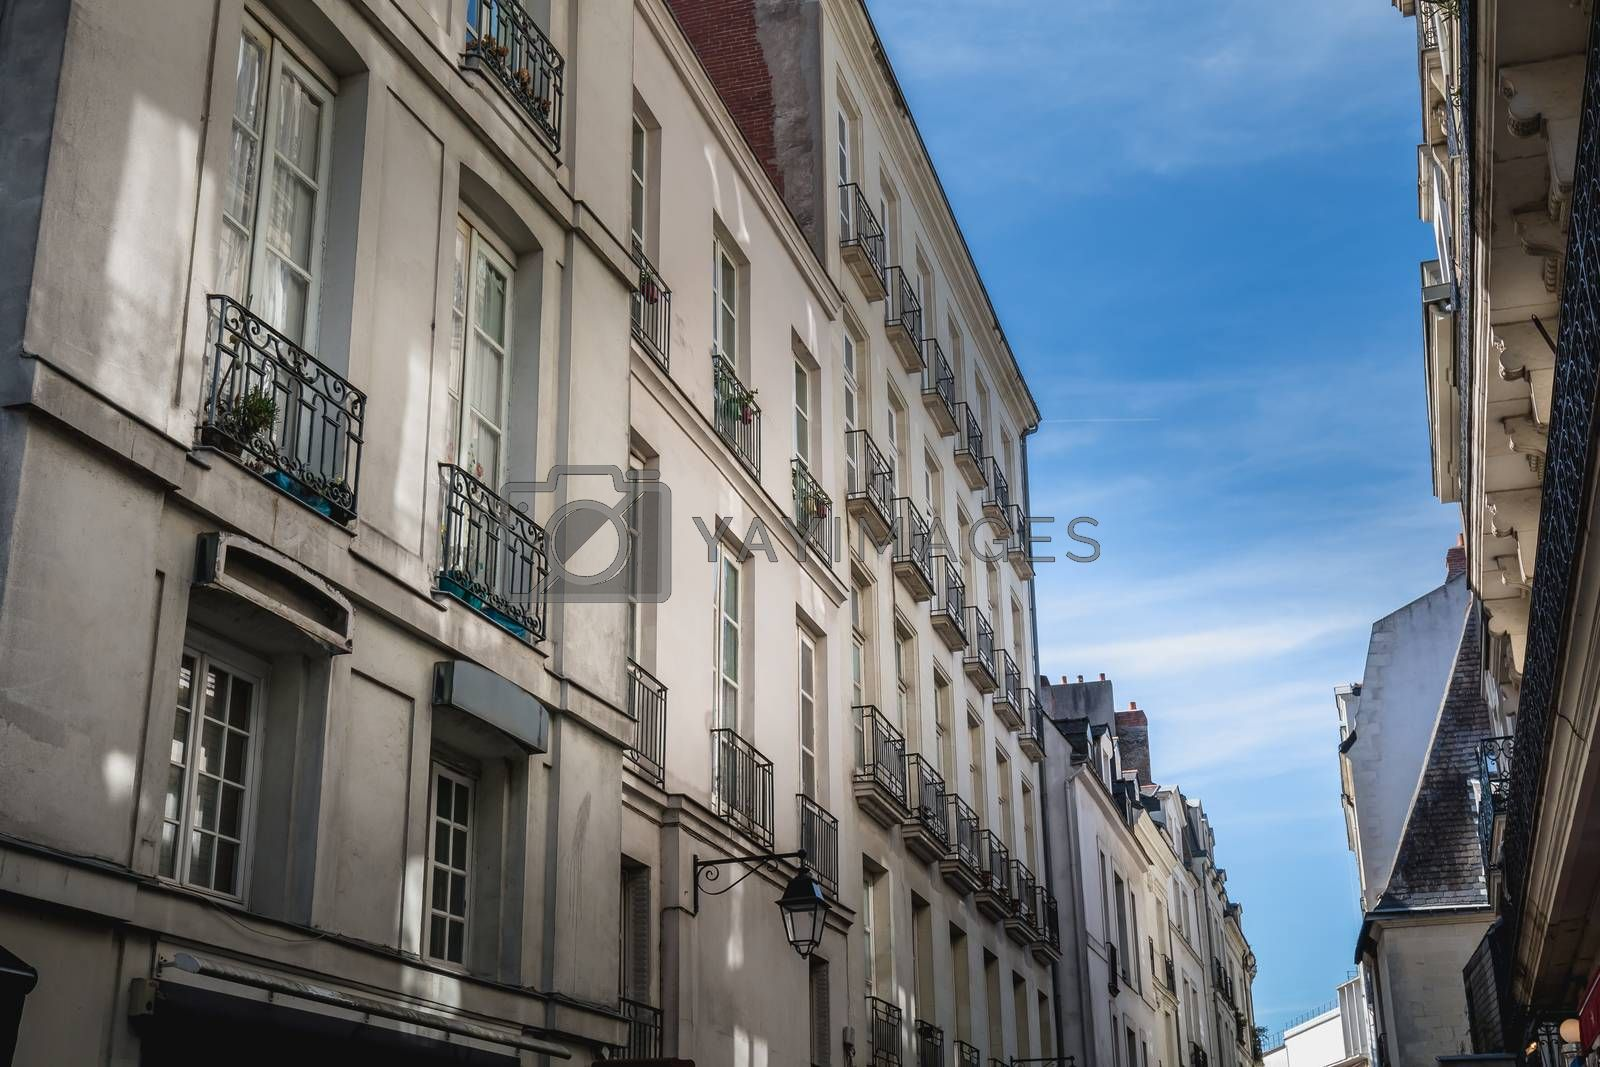 detail of architecture and street atmosphere in Nantes by AtlanticEUROSTOXX